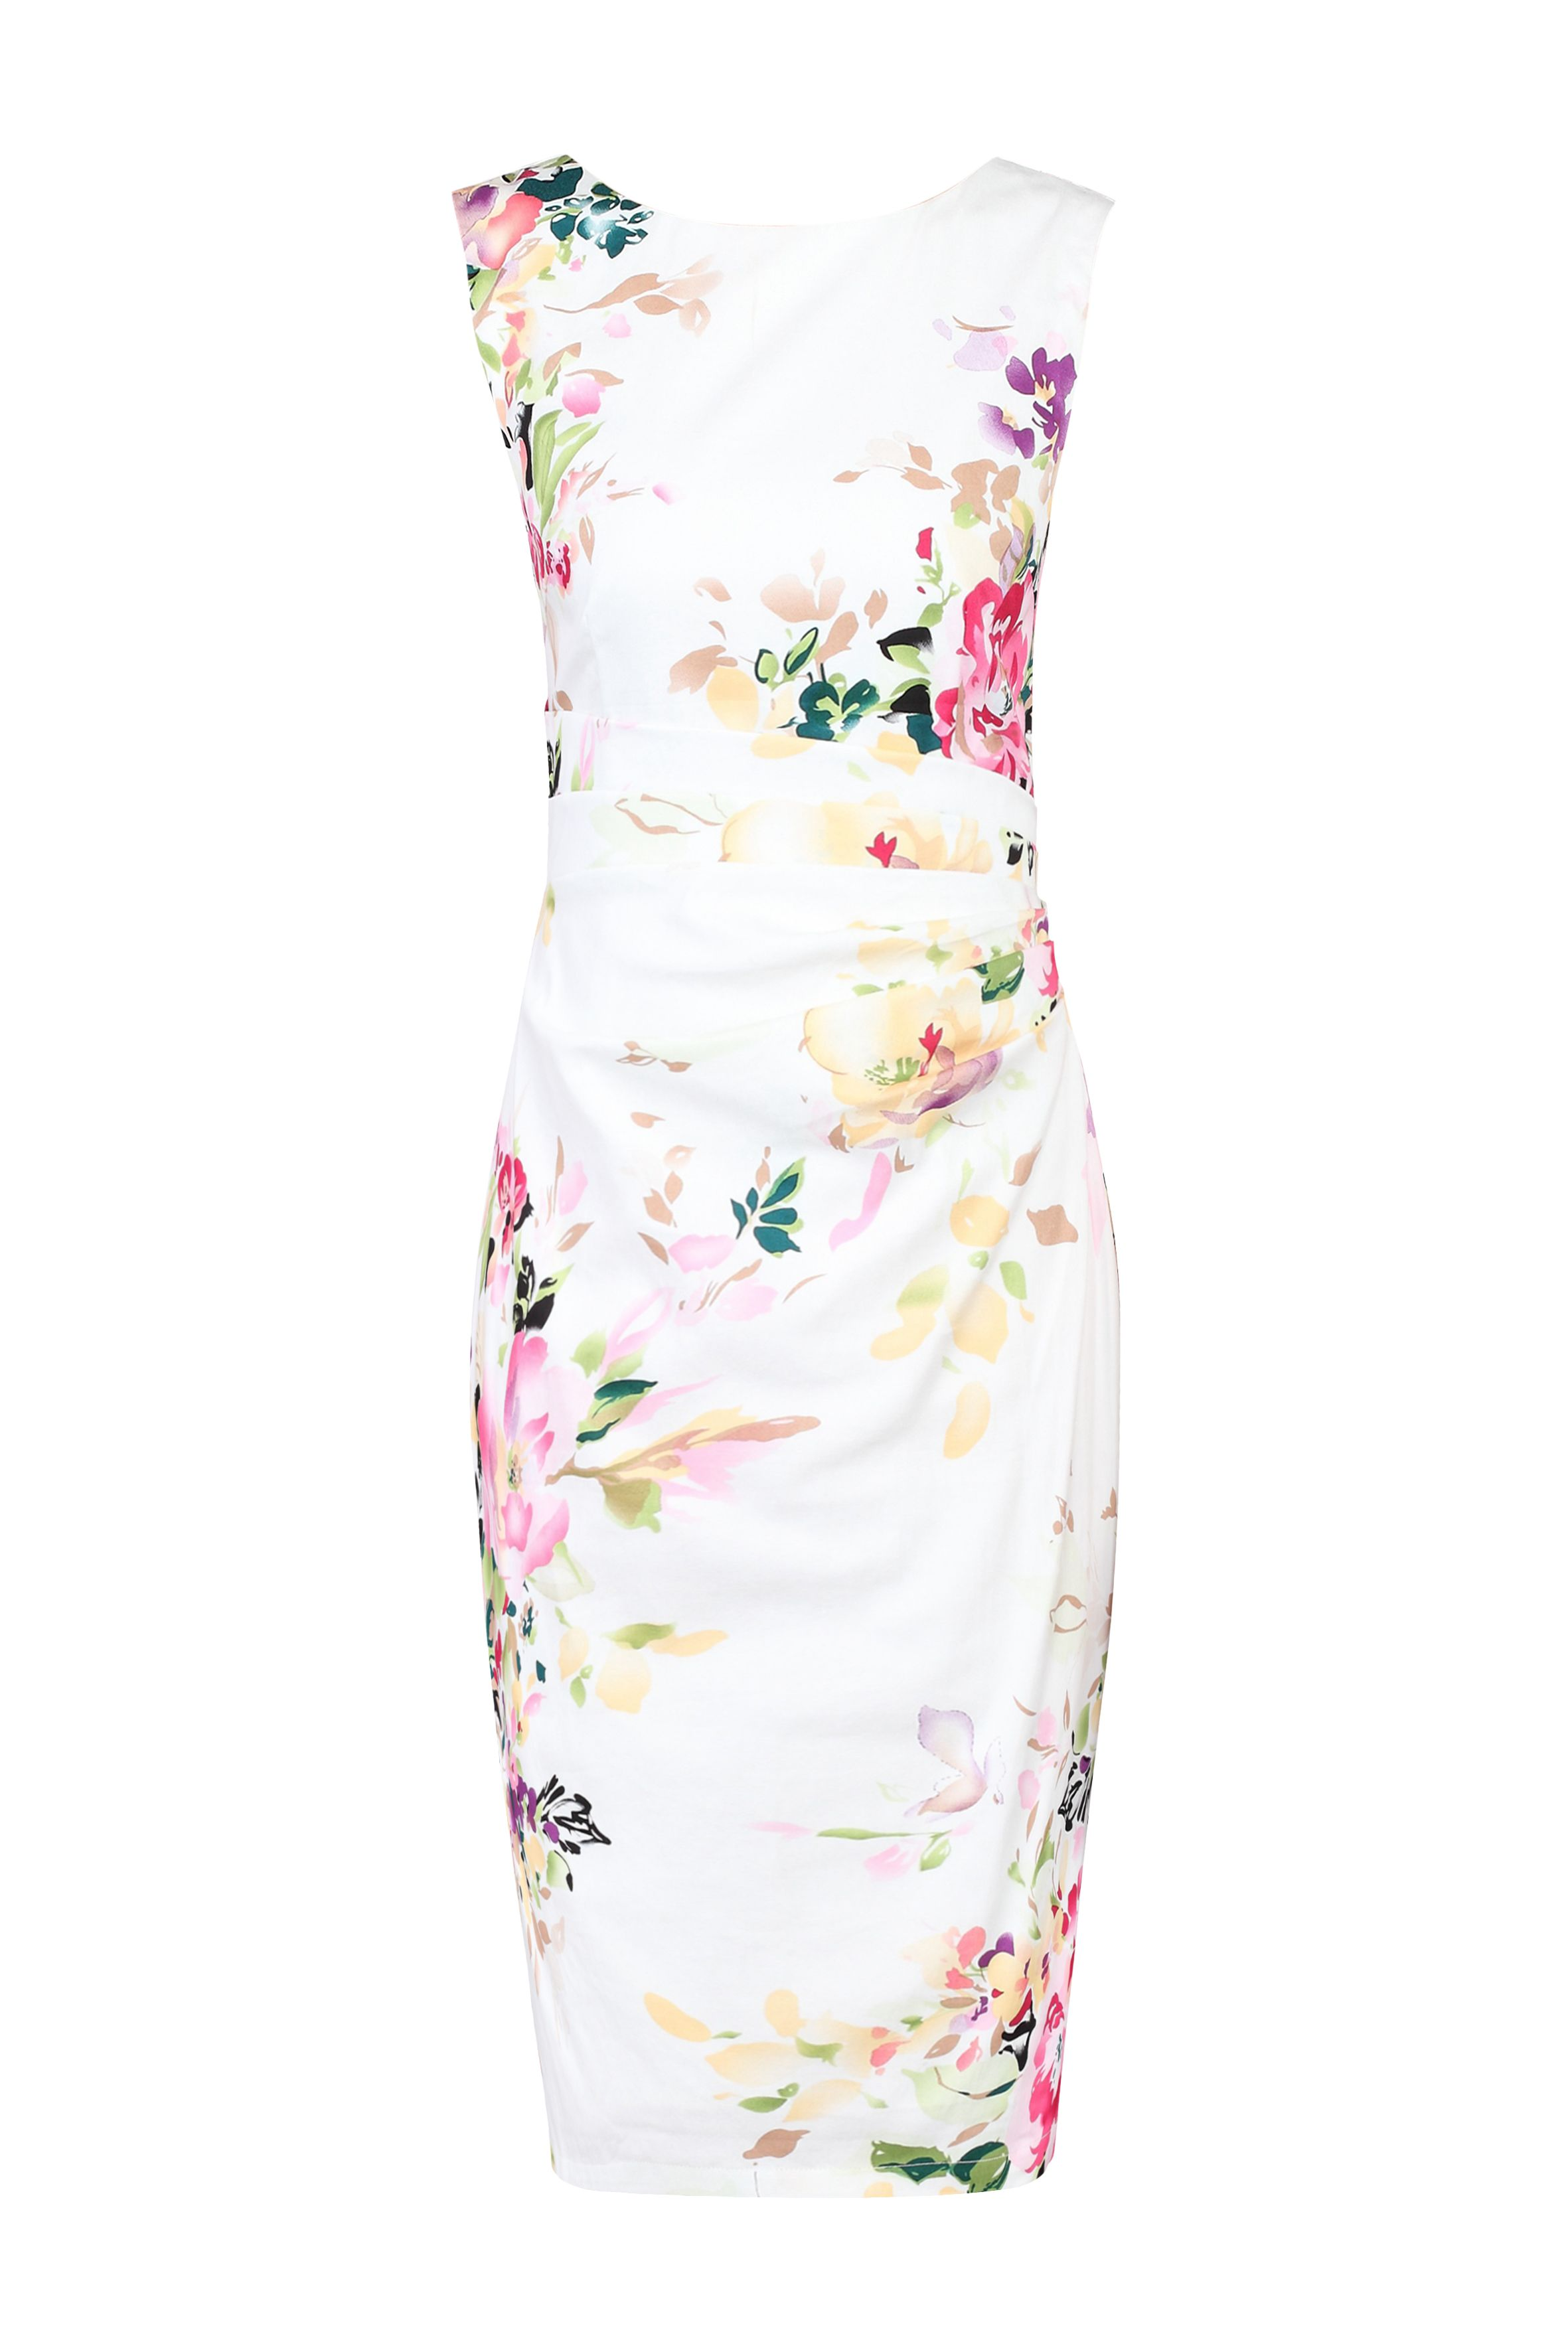 Jolie Moi Floral Print Cotton Shift Dress, White